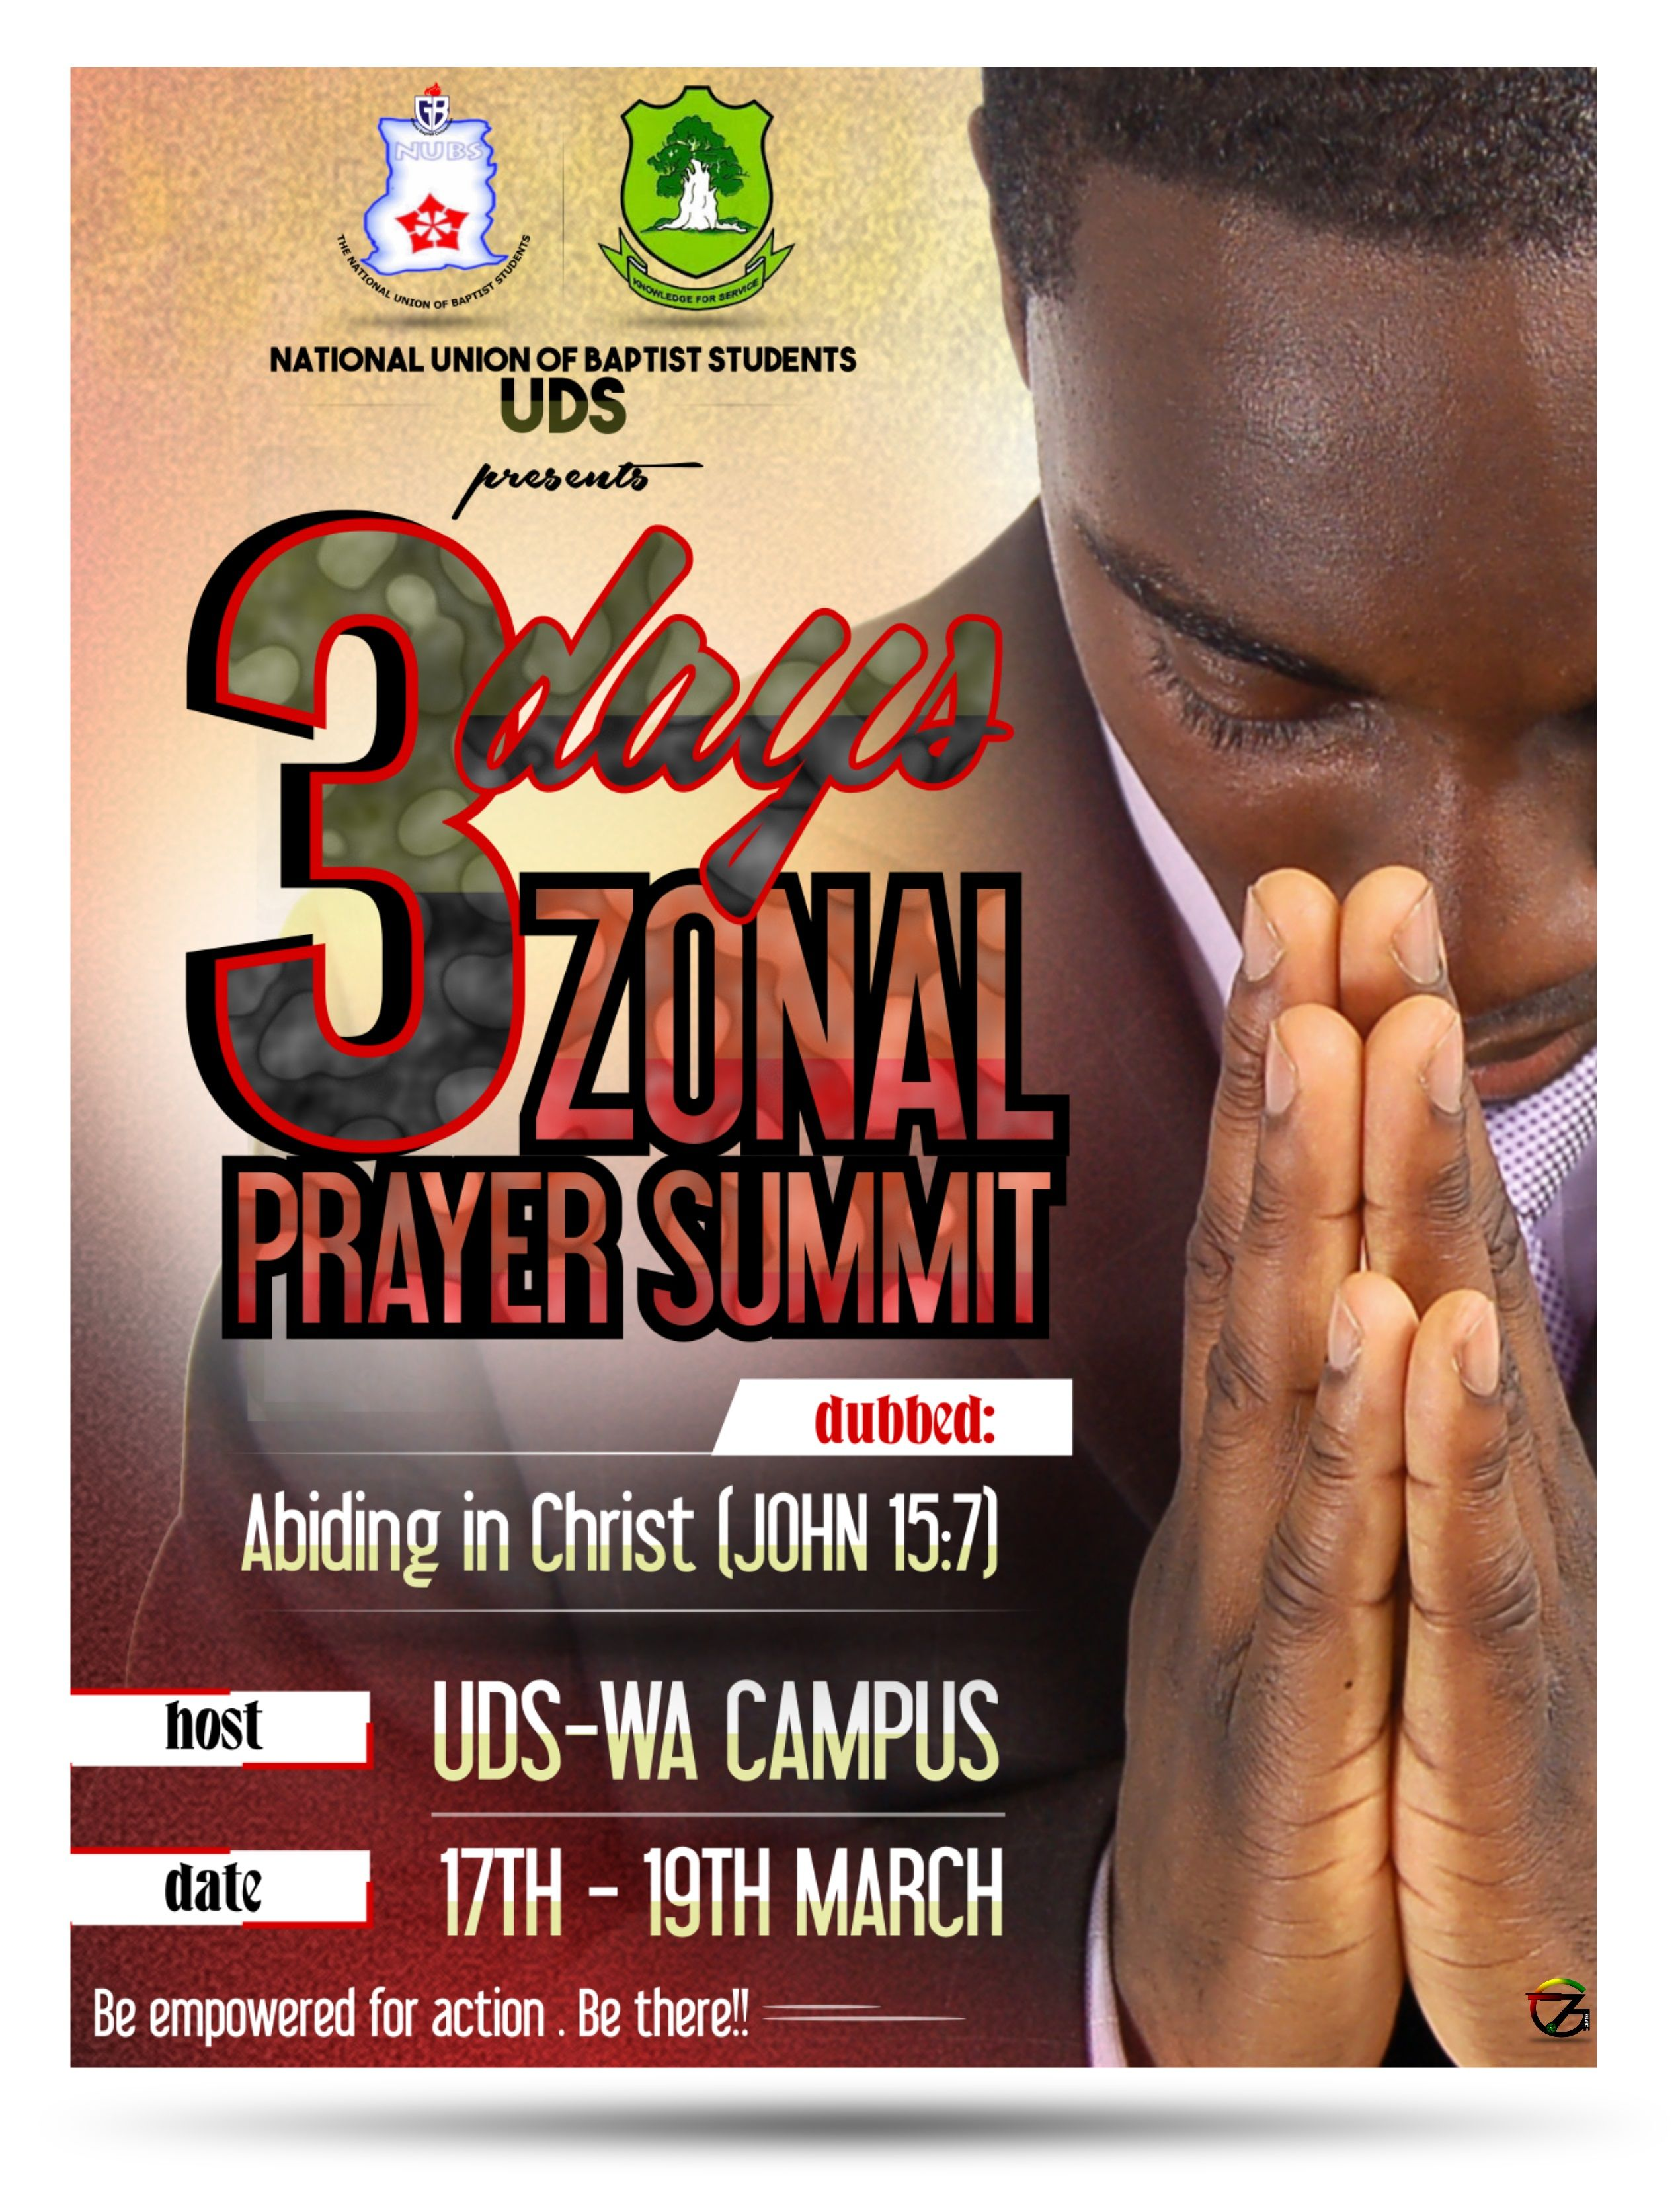 Poster design for coaching institute - Uds National Union Of Baptist Students 30 Days Prayer Summit Poster Design By 7graffix